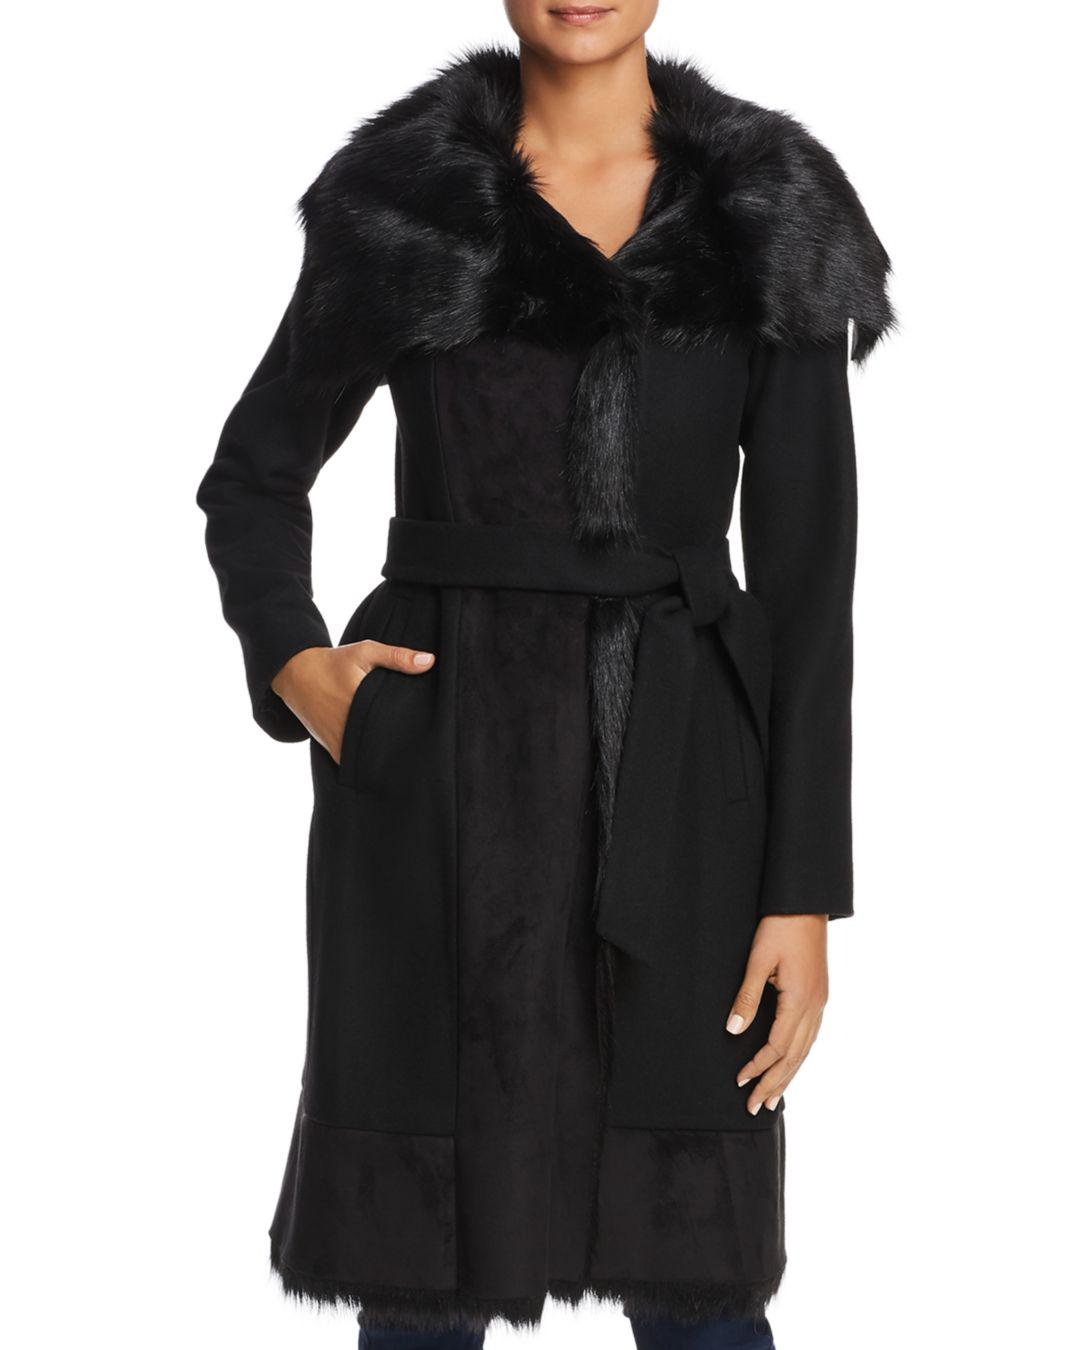 Vince Camuto Faux Fur Trim Belted Wrap Coat In Black Lyst